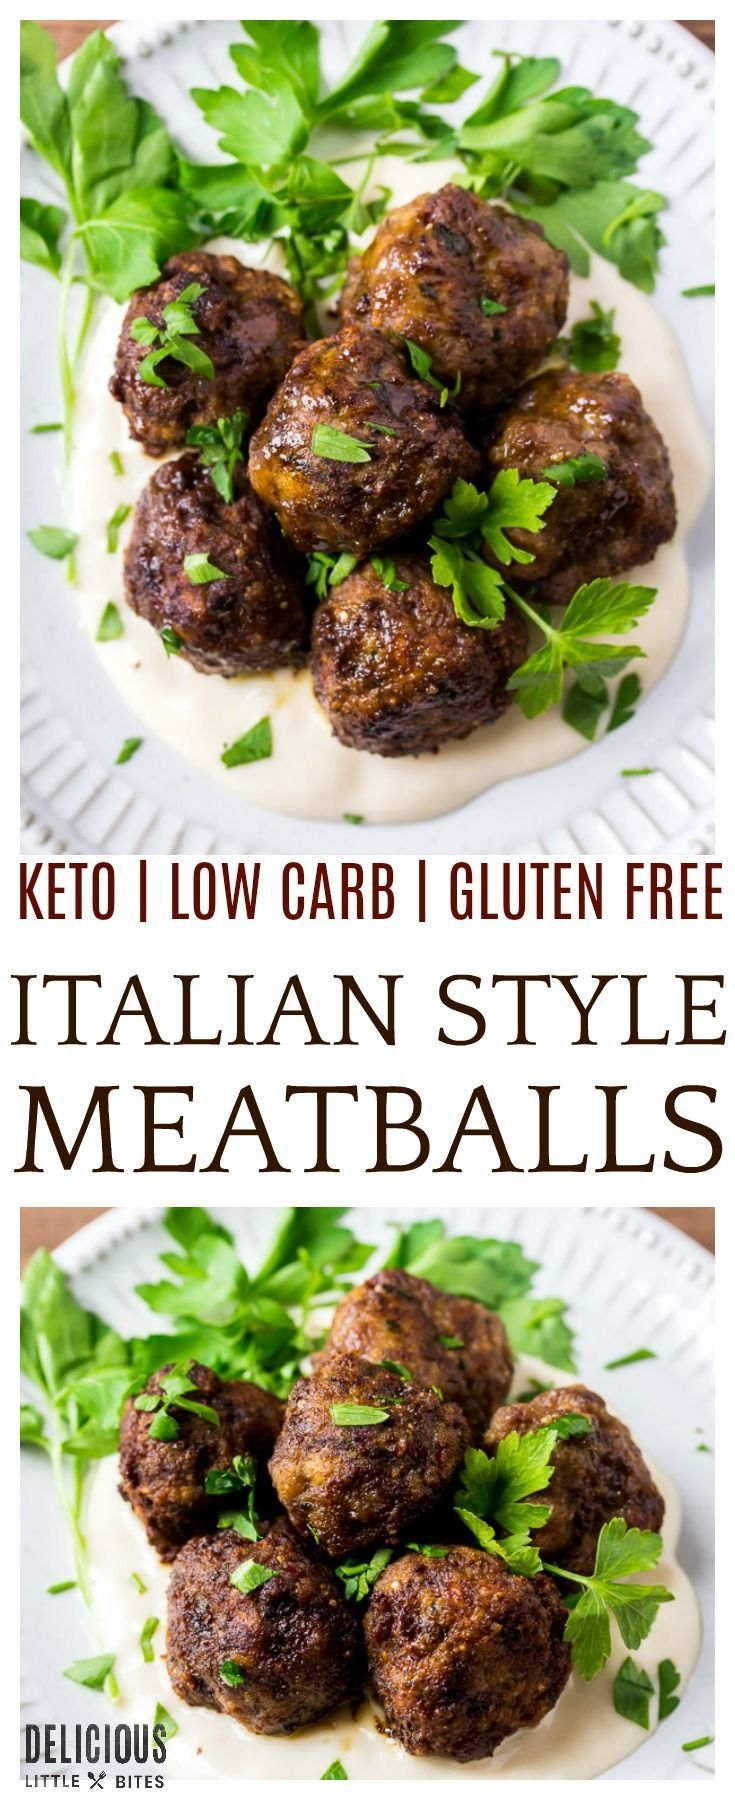 Keto Italian Meatballs Made With Ground Beef And The